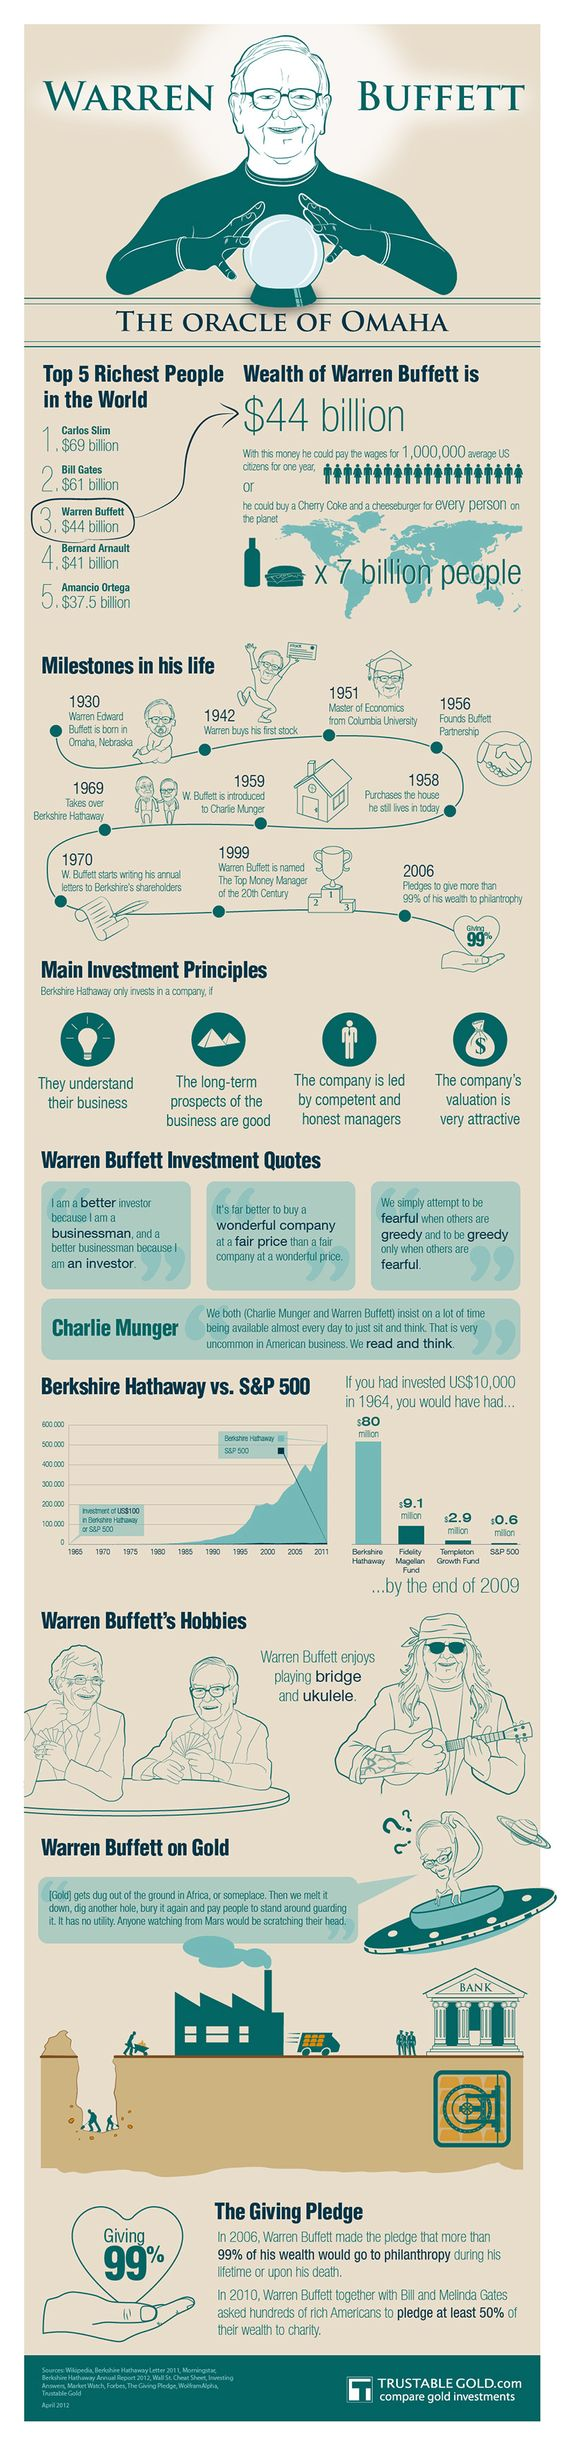 Warren Buffett Infographic: his life, facts and figures, quotes, investment principles